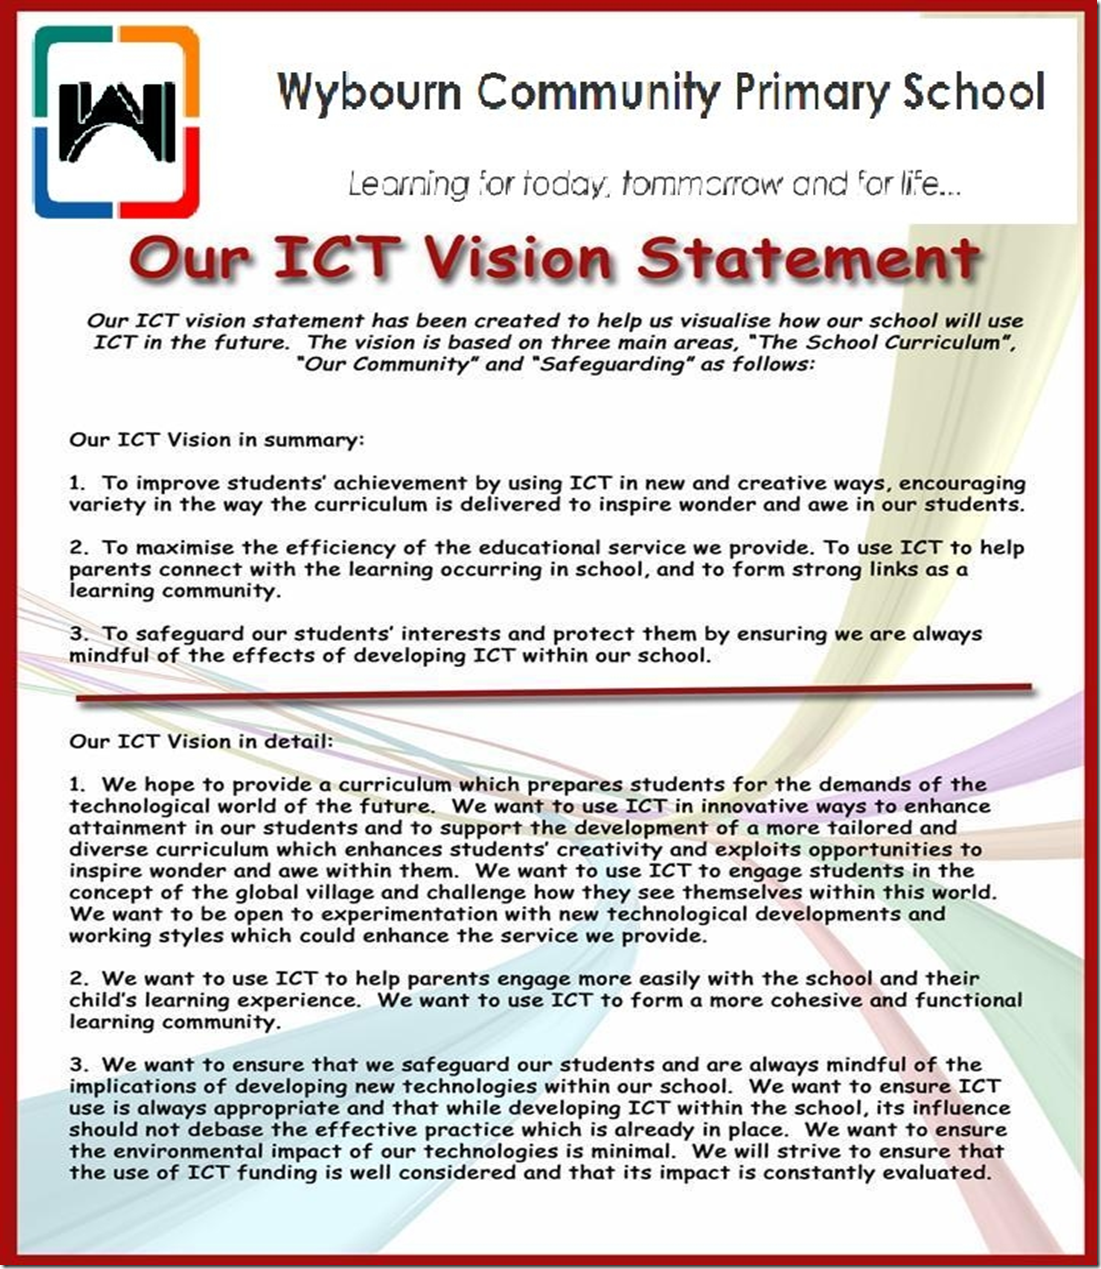 personal use of ict essay Essay about the impact of ict on society - the impact of ict on society task 1 newspaper industry the effects of using a website that shows news items, on the newspaper, and individual reader, society and the environment.